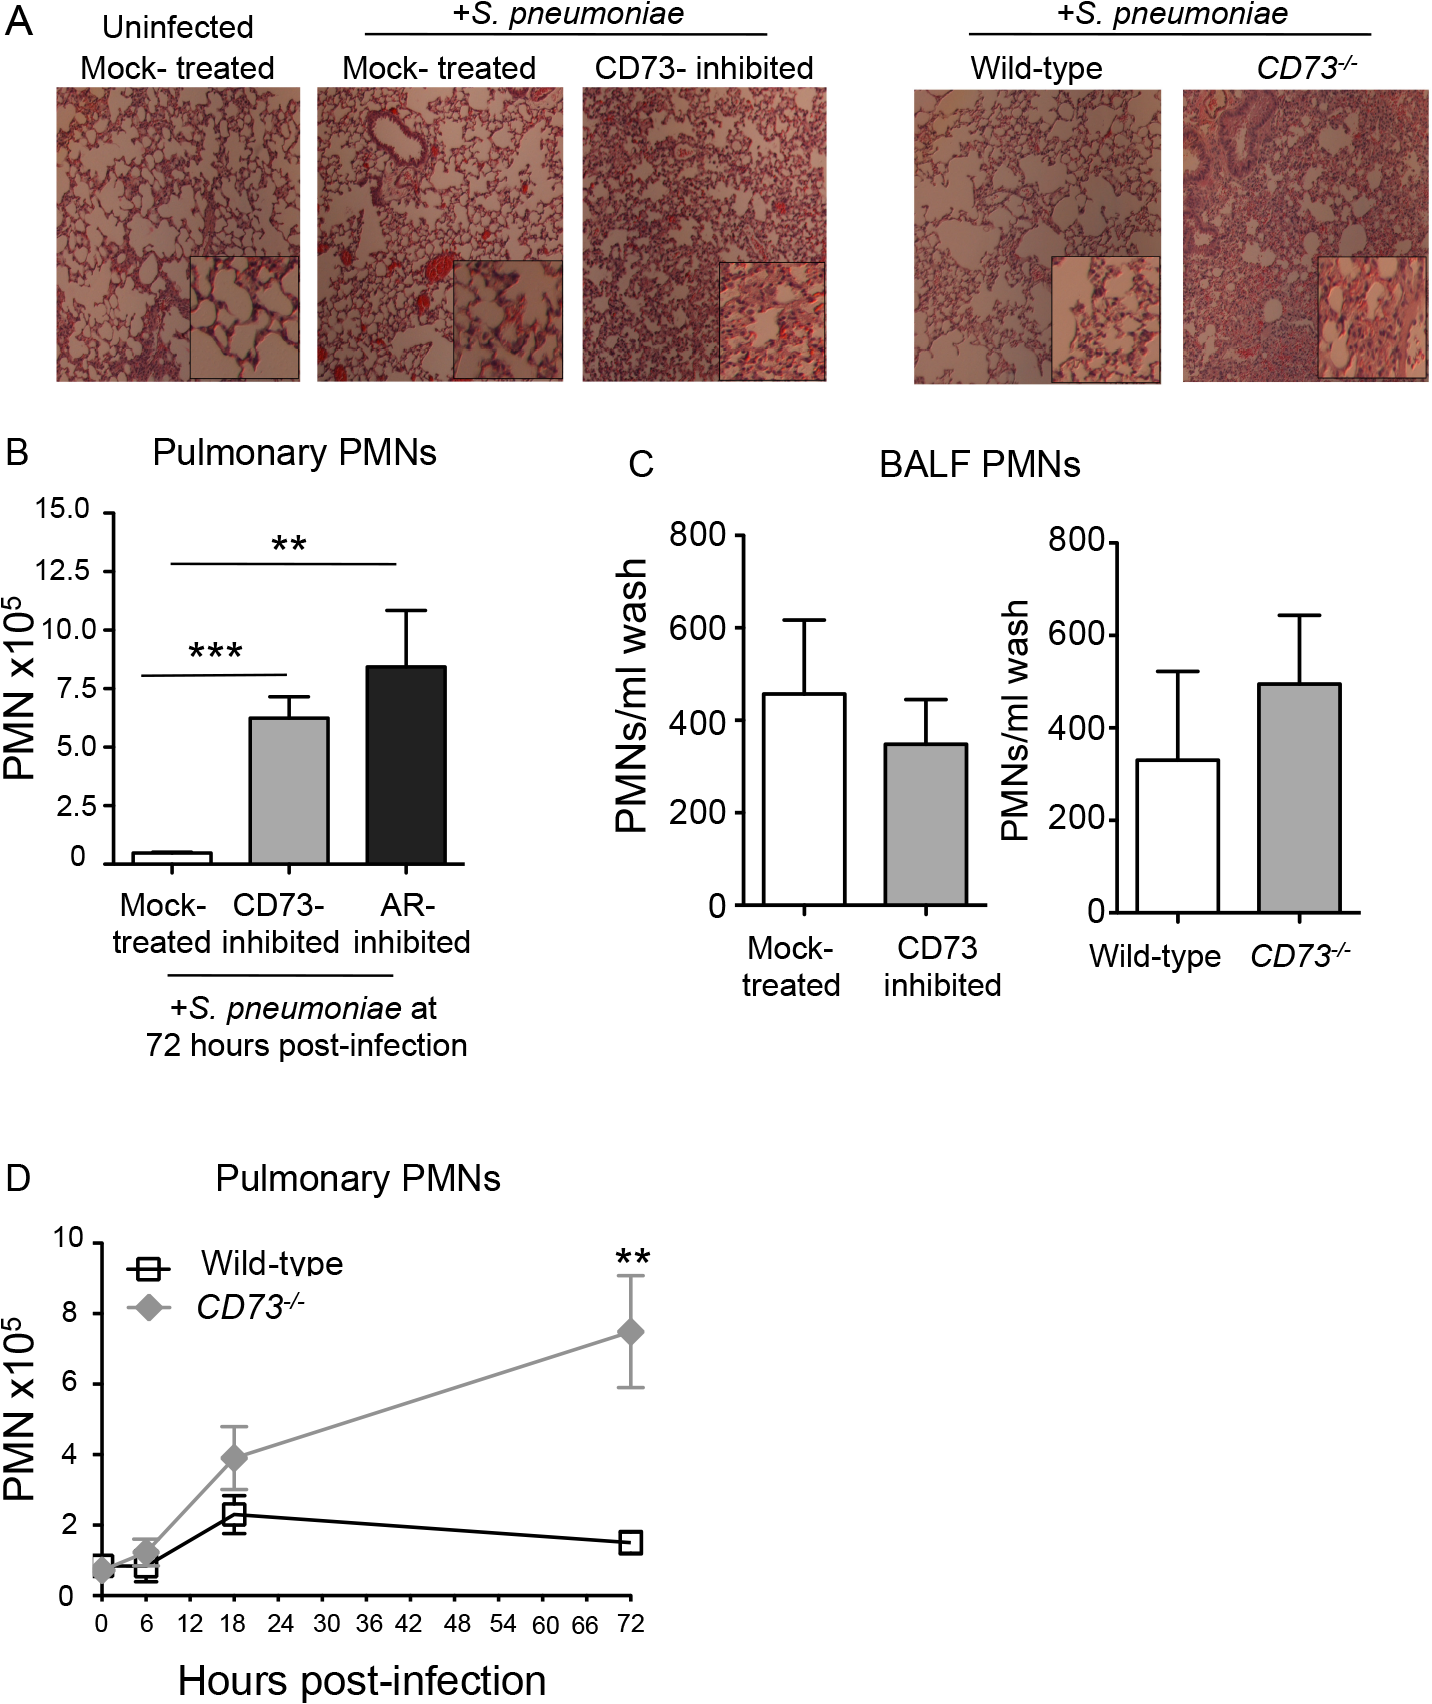 Inhibition of EAD production or signaling significantly increases PMN numbers in the pulmonary tissues.